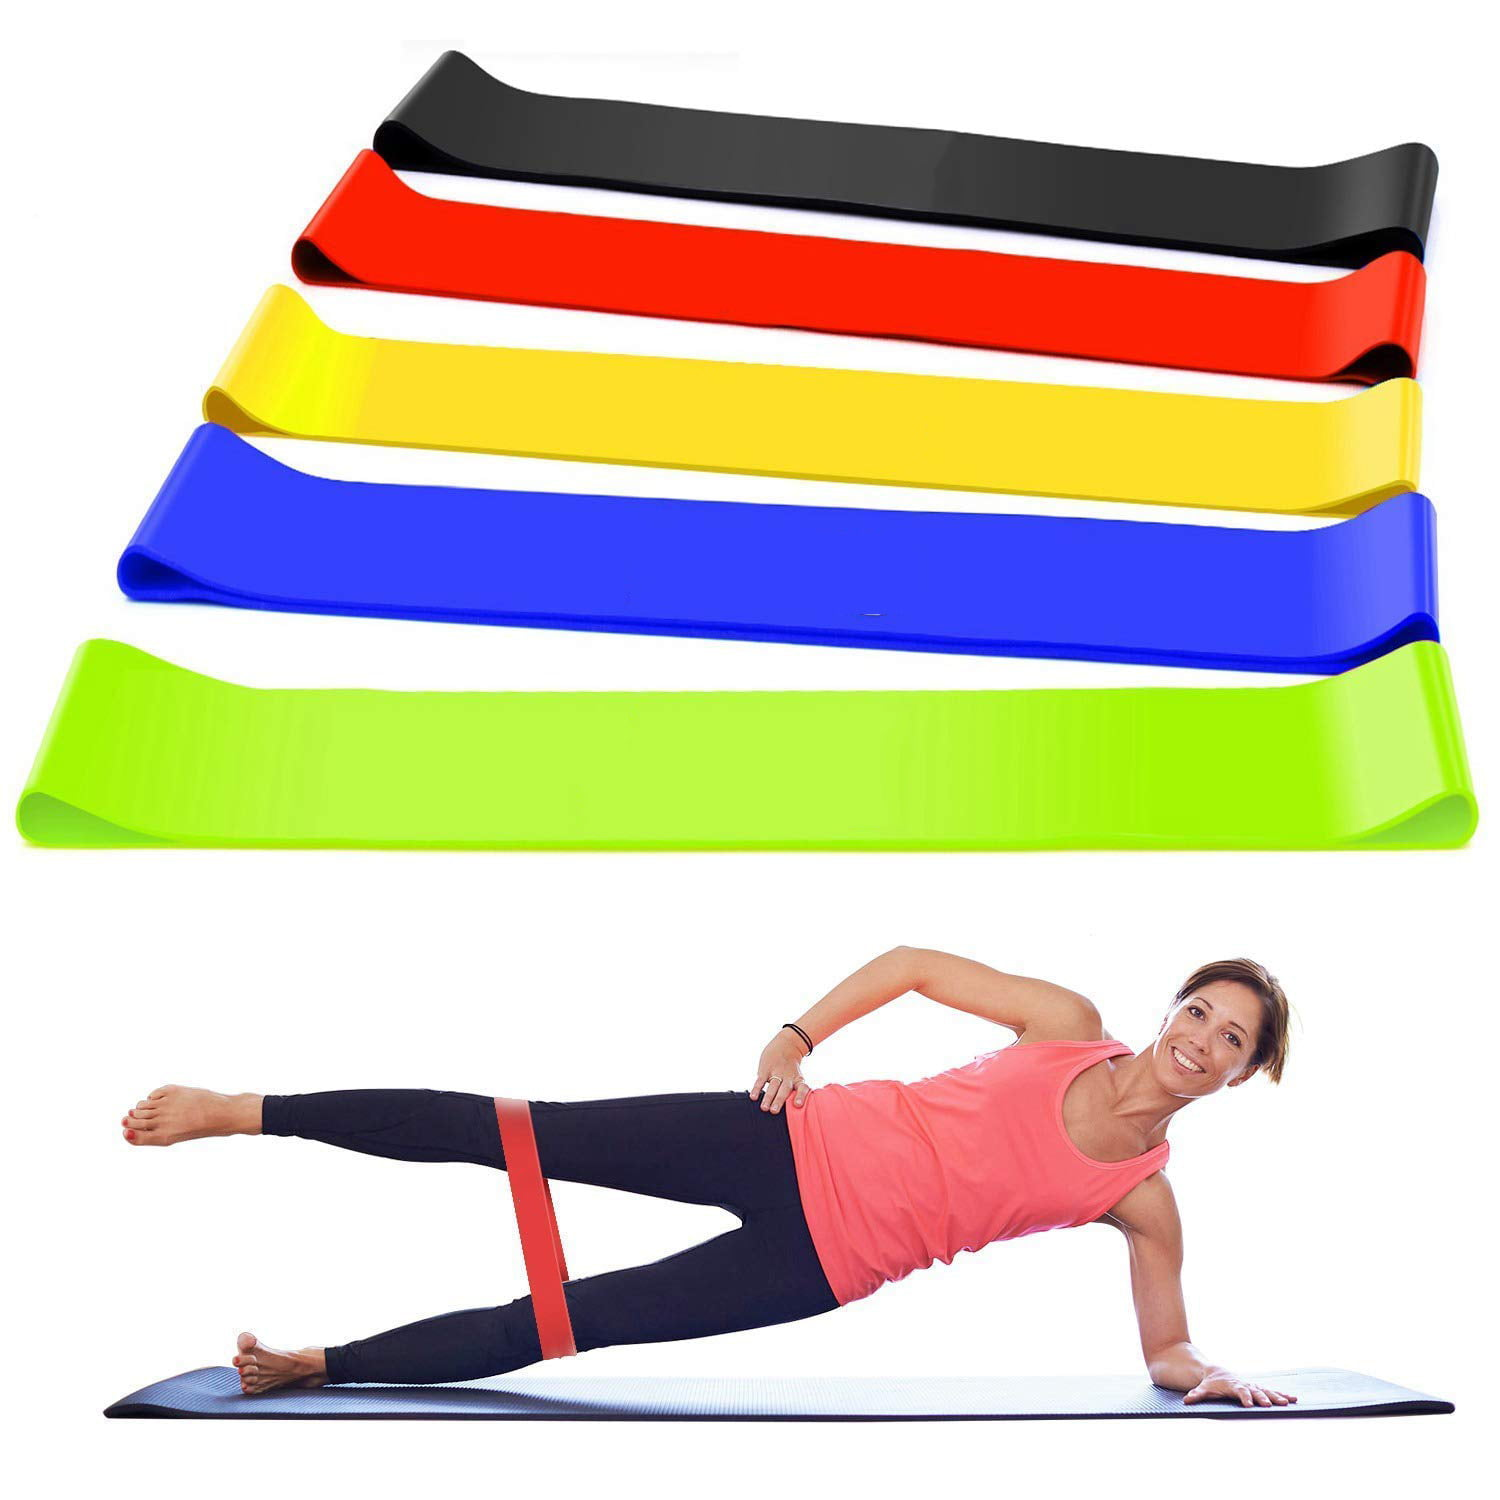 Loop Bands Fitness Resistance Bands Set of 5 Exercise Gym Workout From Home